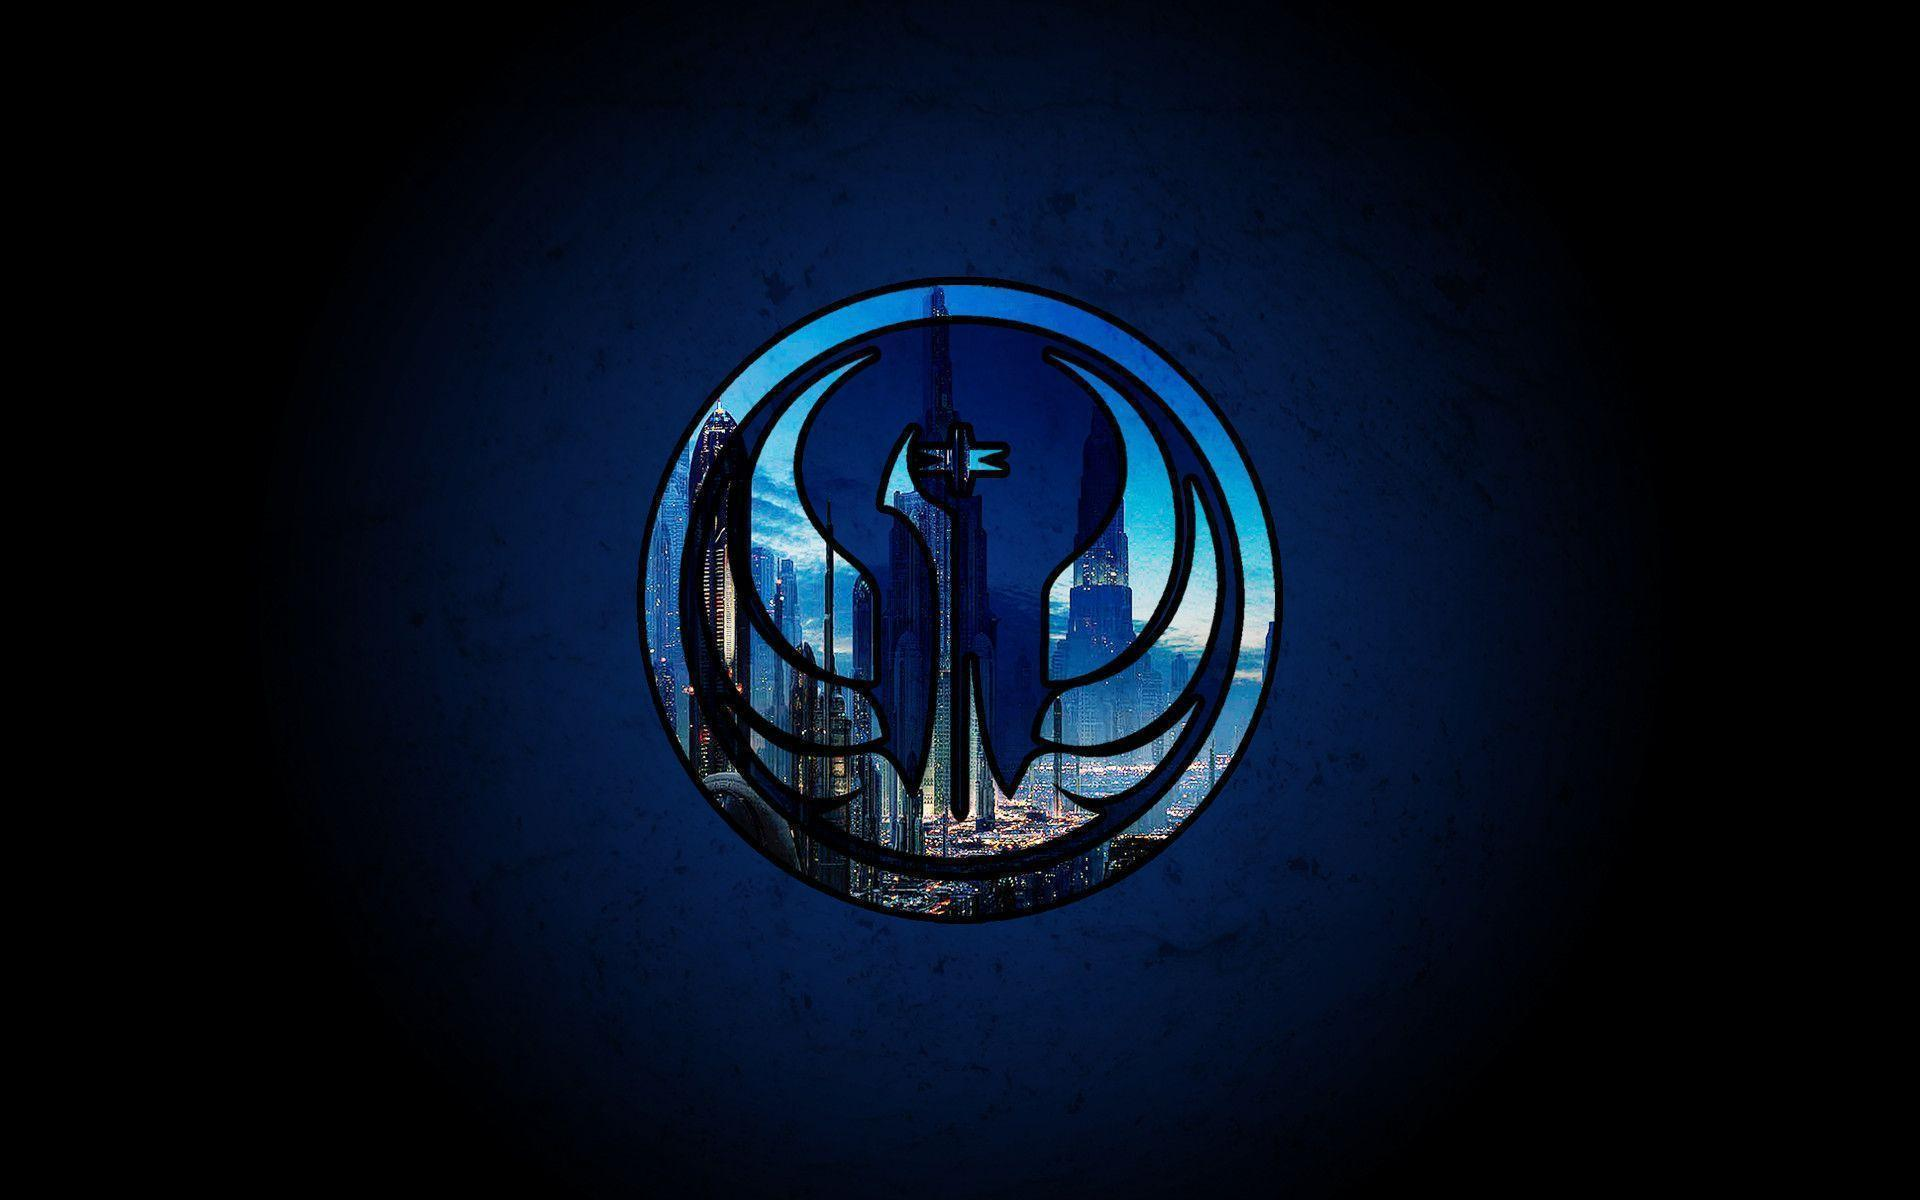 republic logo star wars wwwimgkidcom the image kid